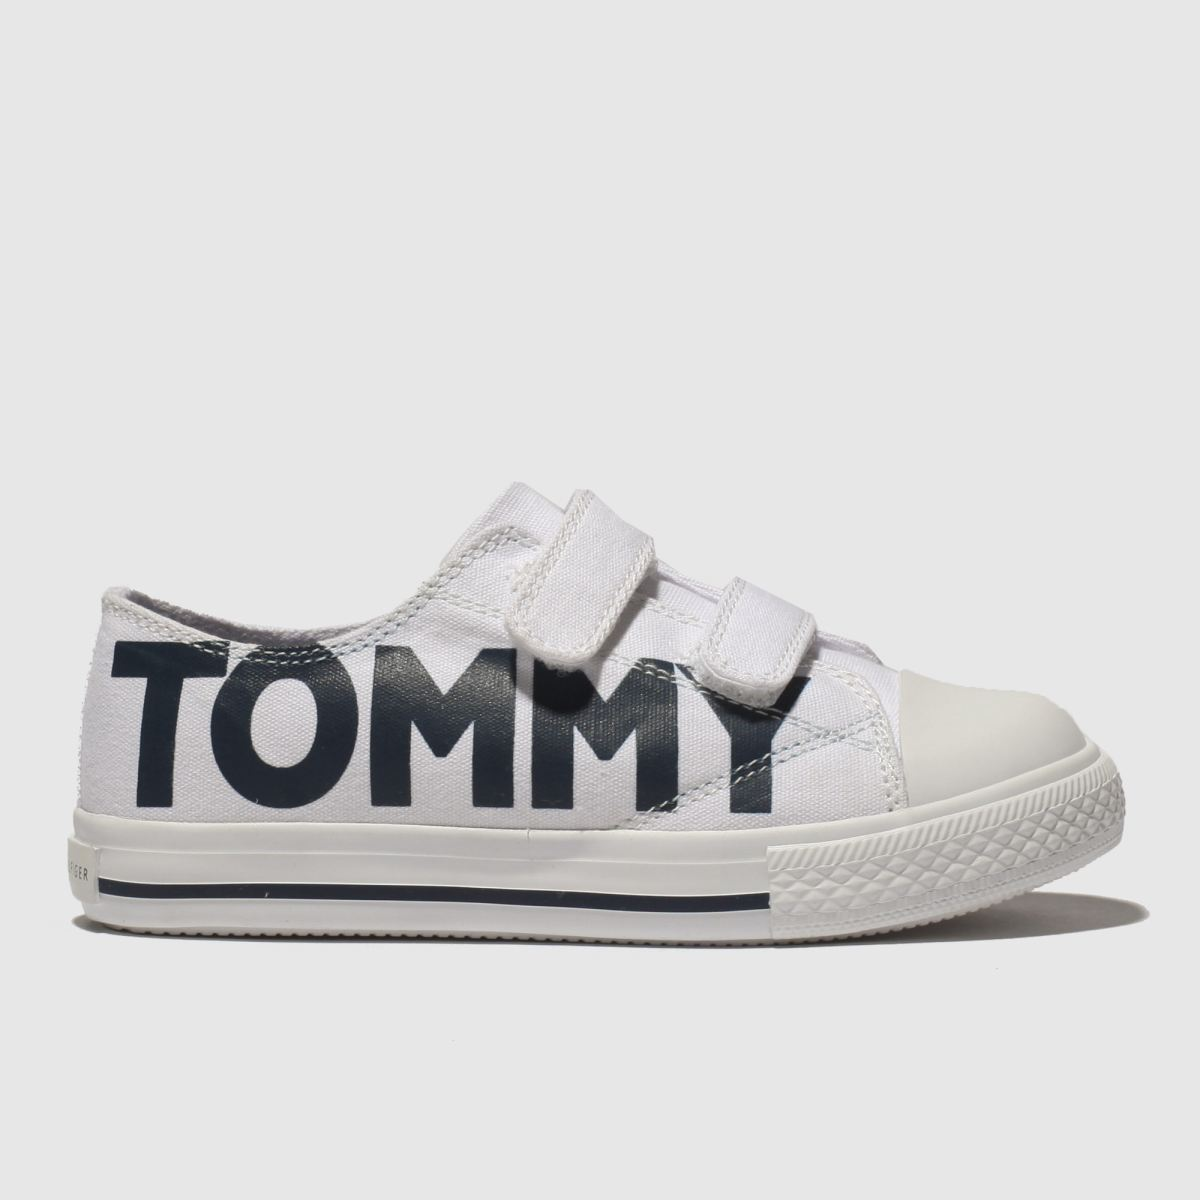 Tommy Hilfiger White & Navy Velcro Sneaker Trainers Toddler